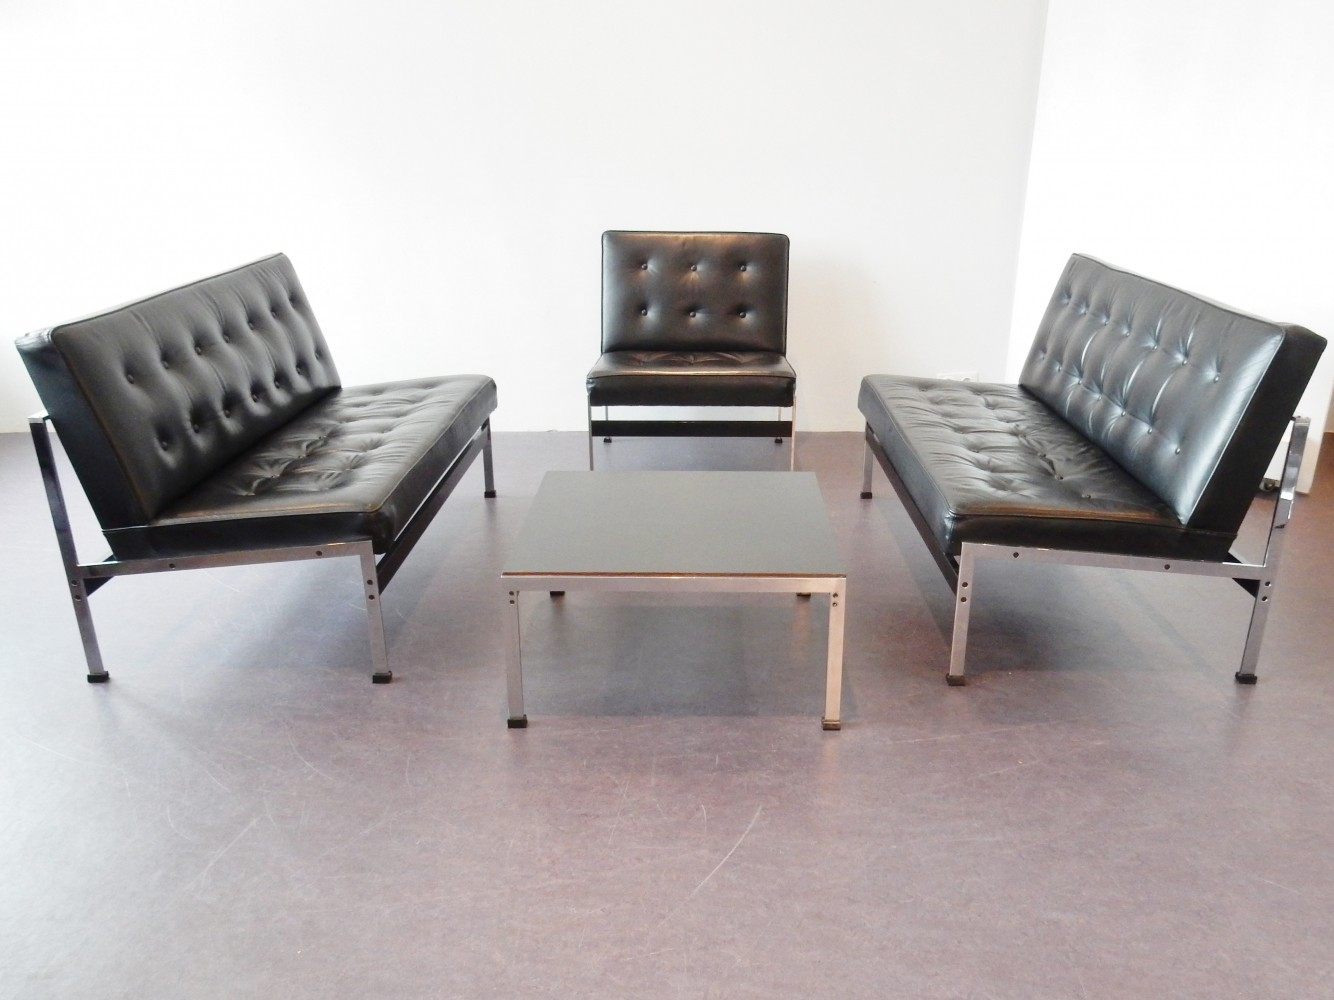 Model 020 seating group by Kho Liang Ie for Artifort, 1950s